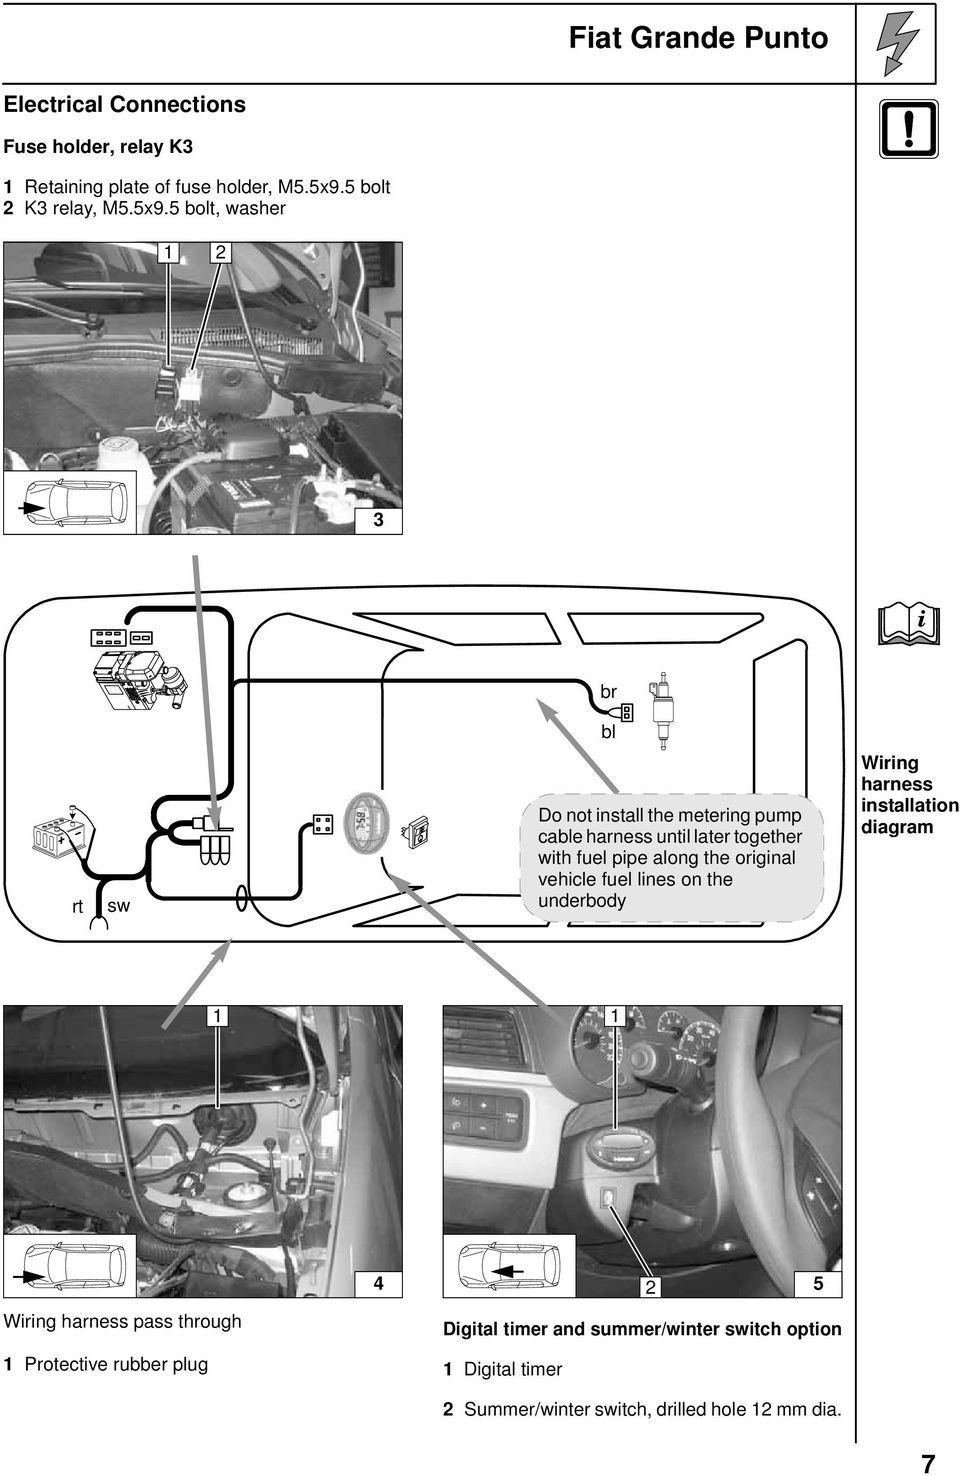 Always Follow All Webasto Installation And Repair Instructions Fiat Fuel Pump Diagram 5 Bolt Washer 3 I Br Bl Rt Sw Do Not Install The Metering